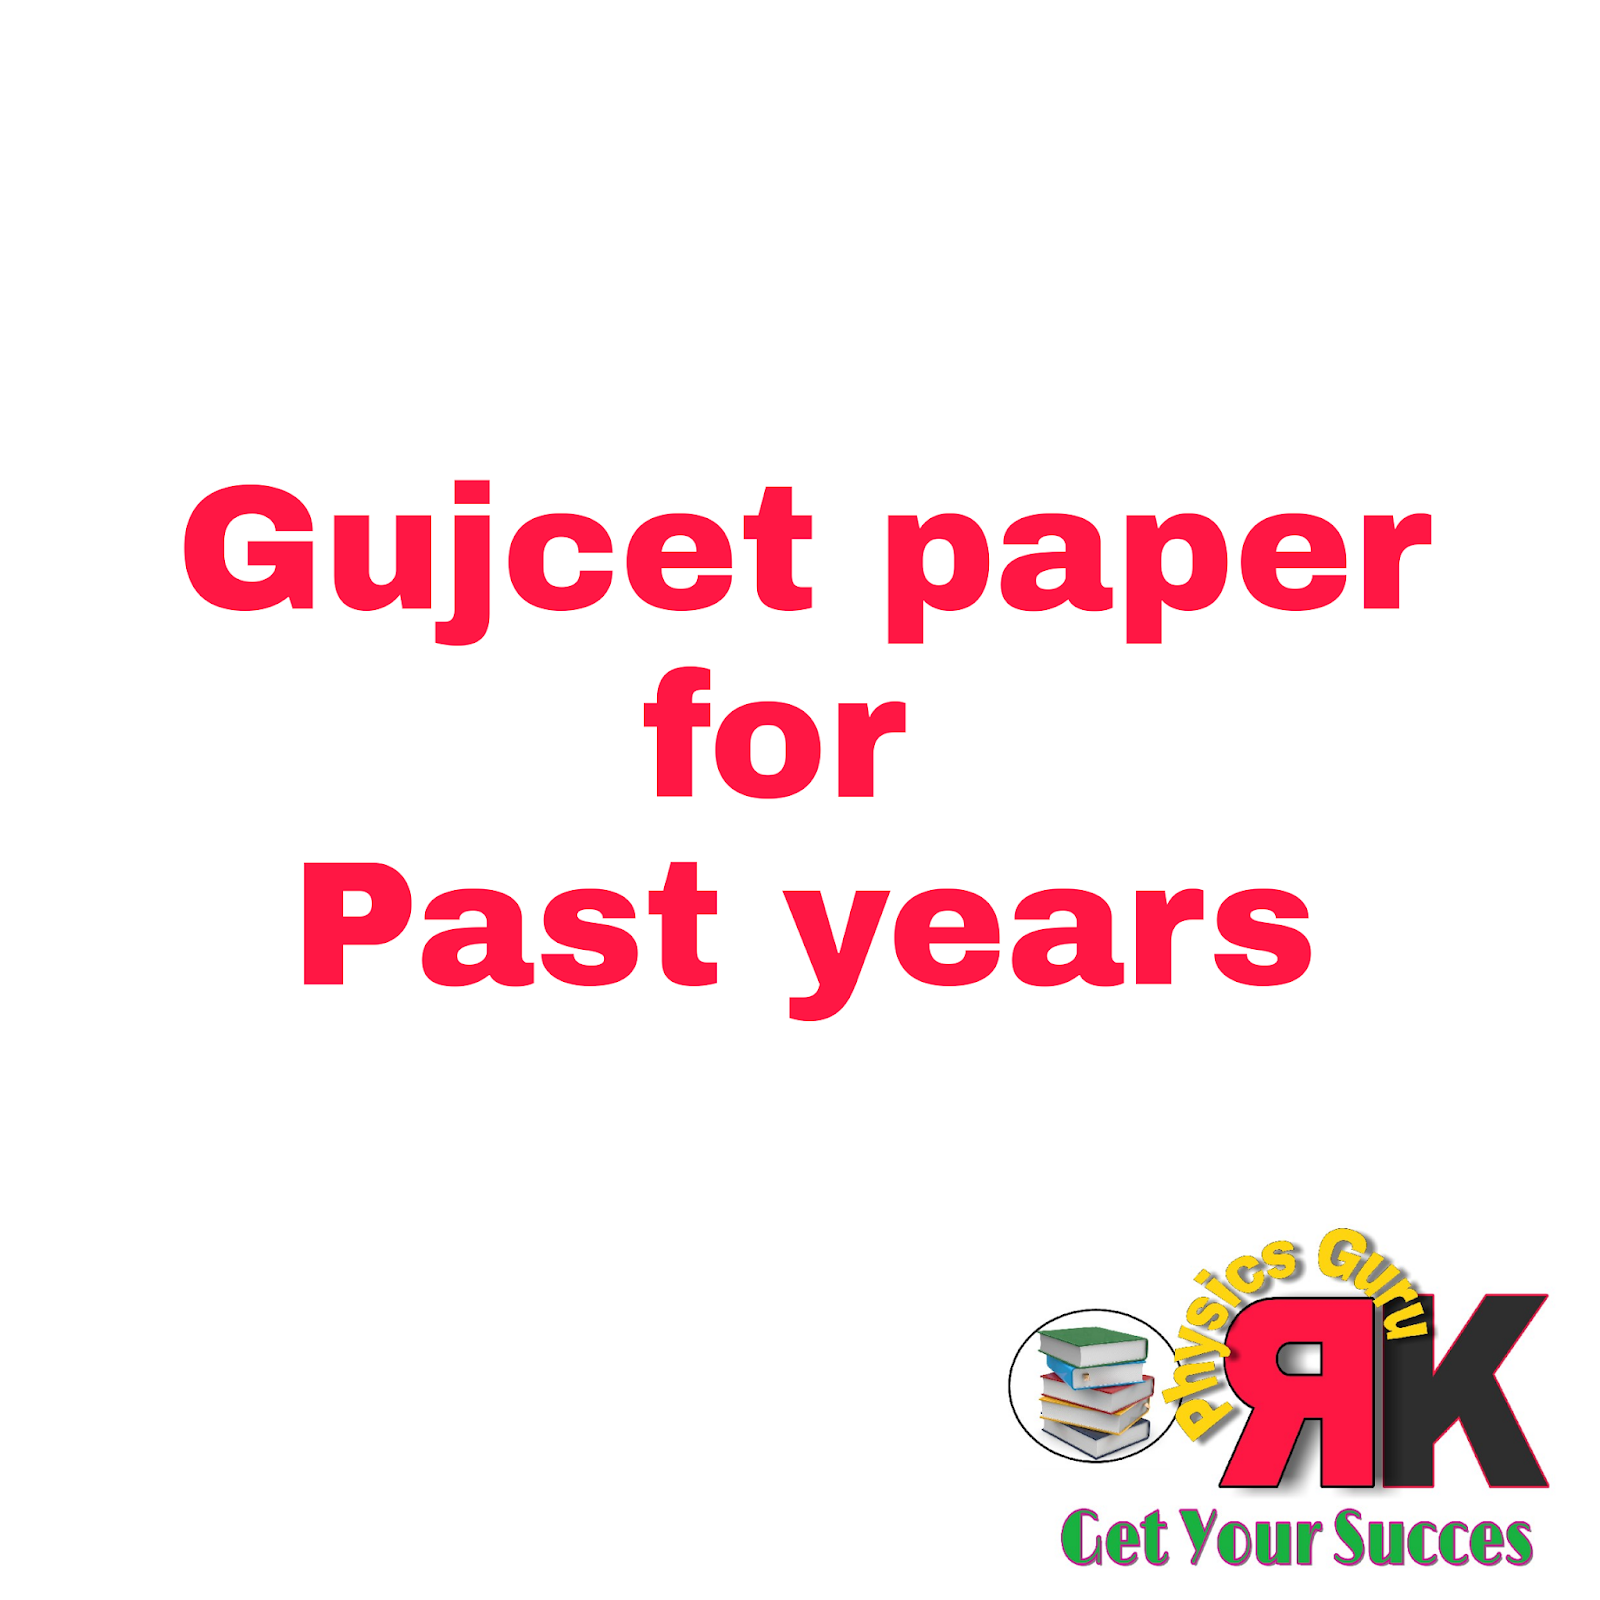 Gujcet paper Past year for Gseb - RK PhysicsGuru